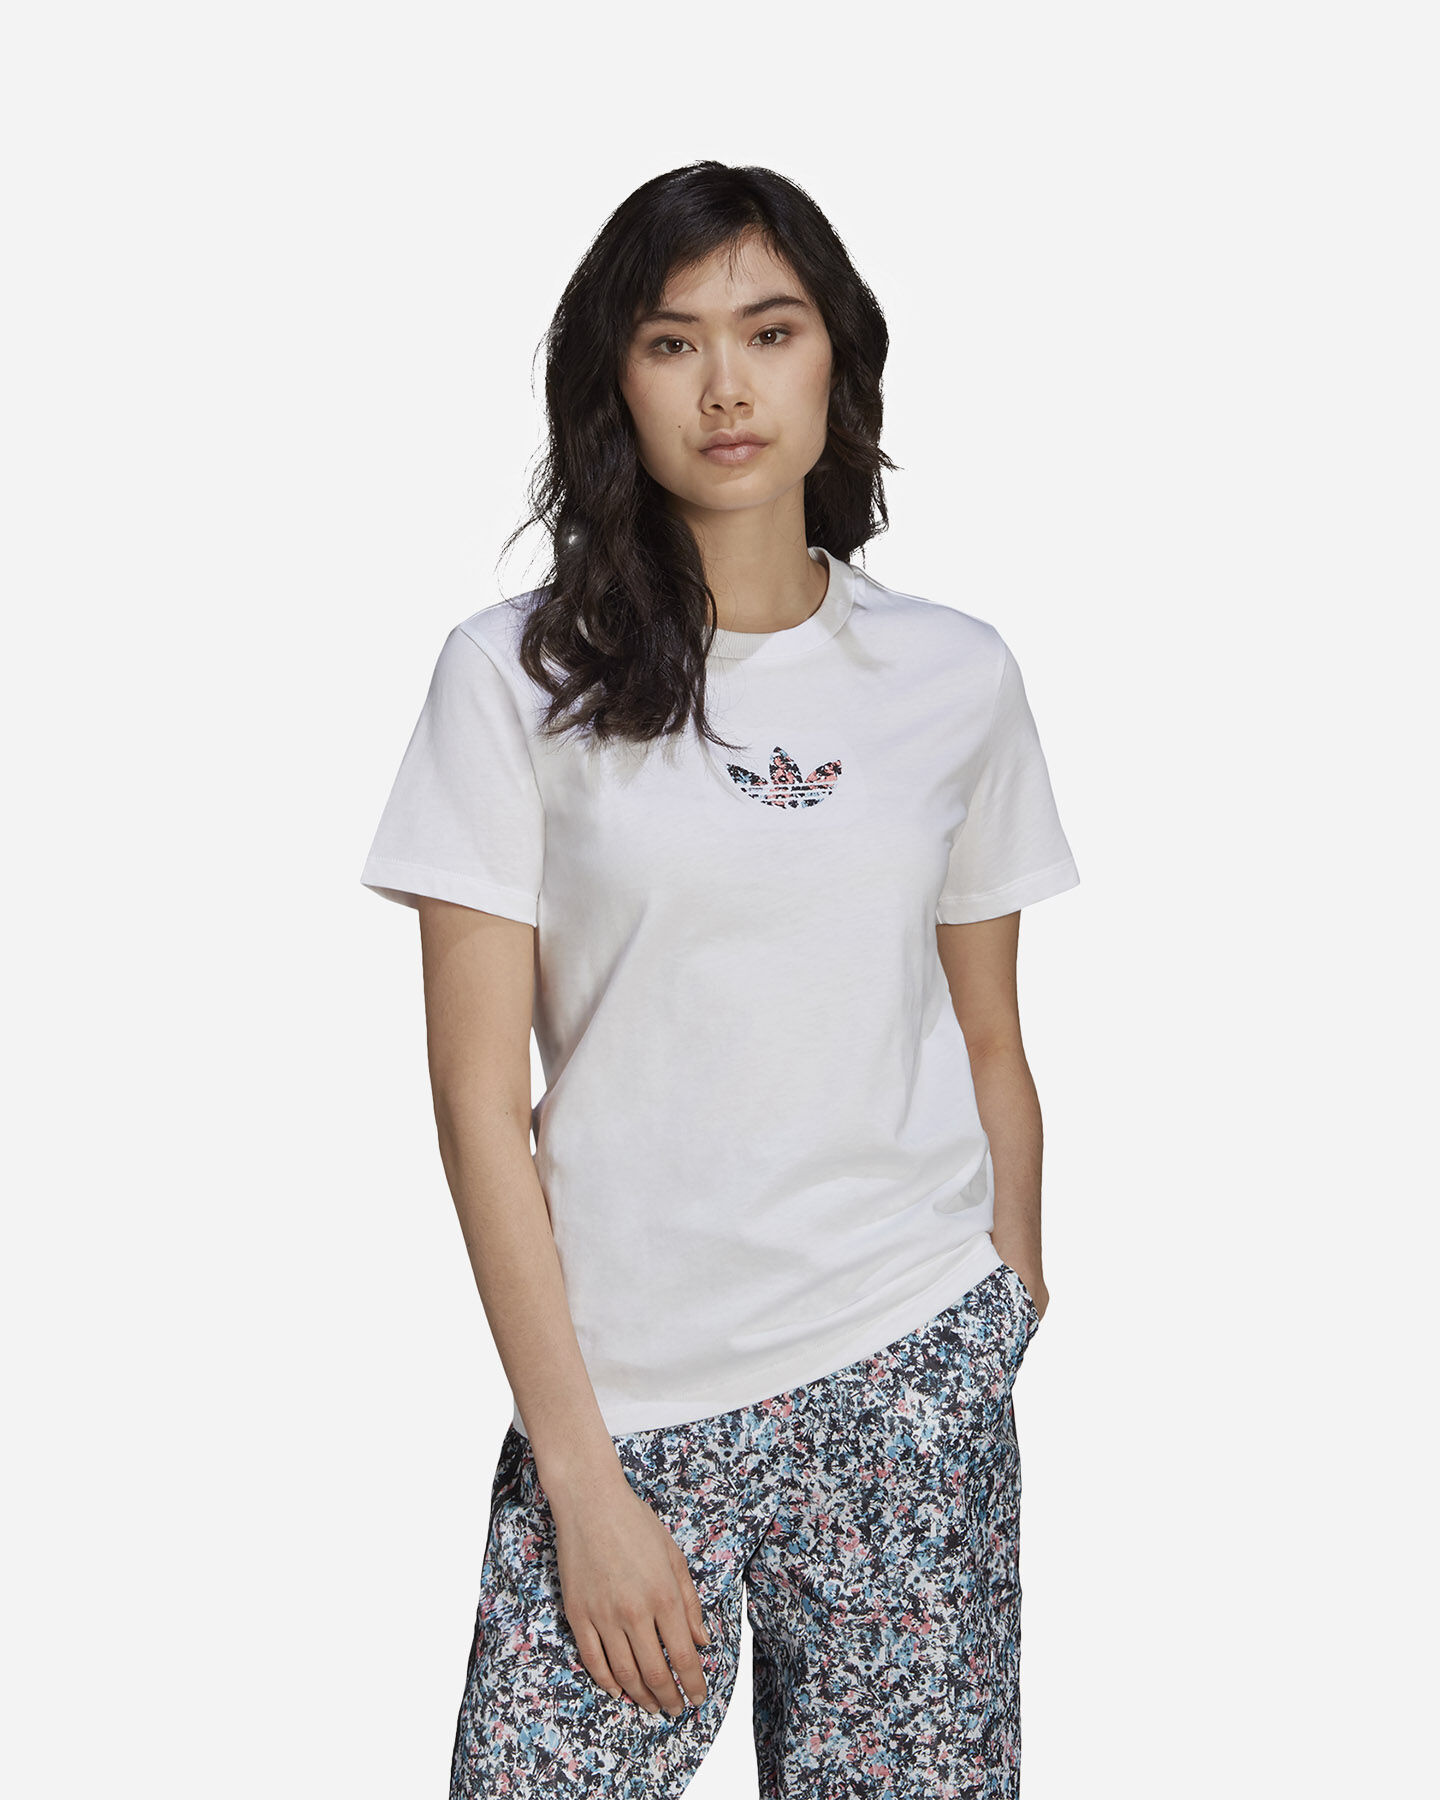 T-Shirt ADIDAS FLOWER W S5271153 scatto 1